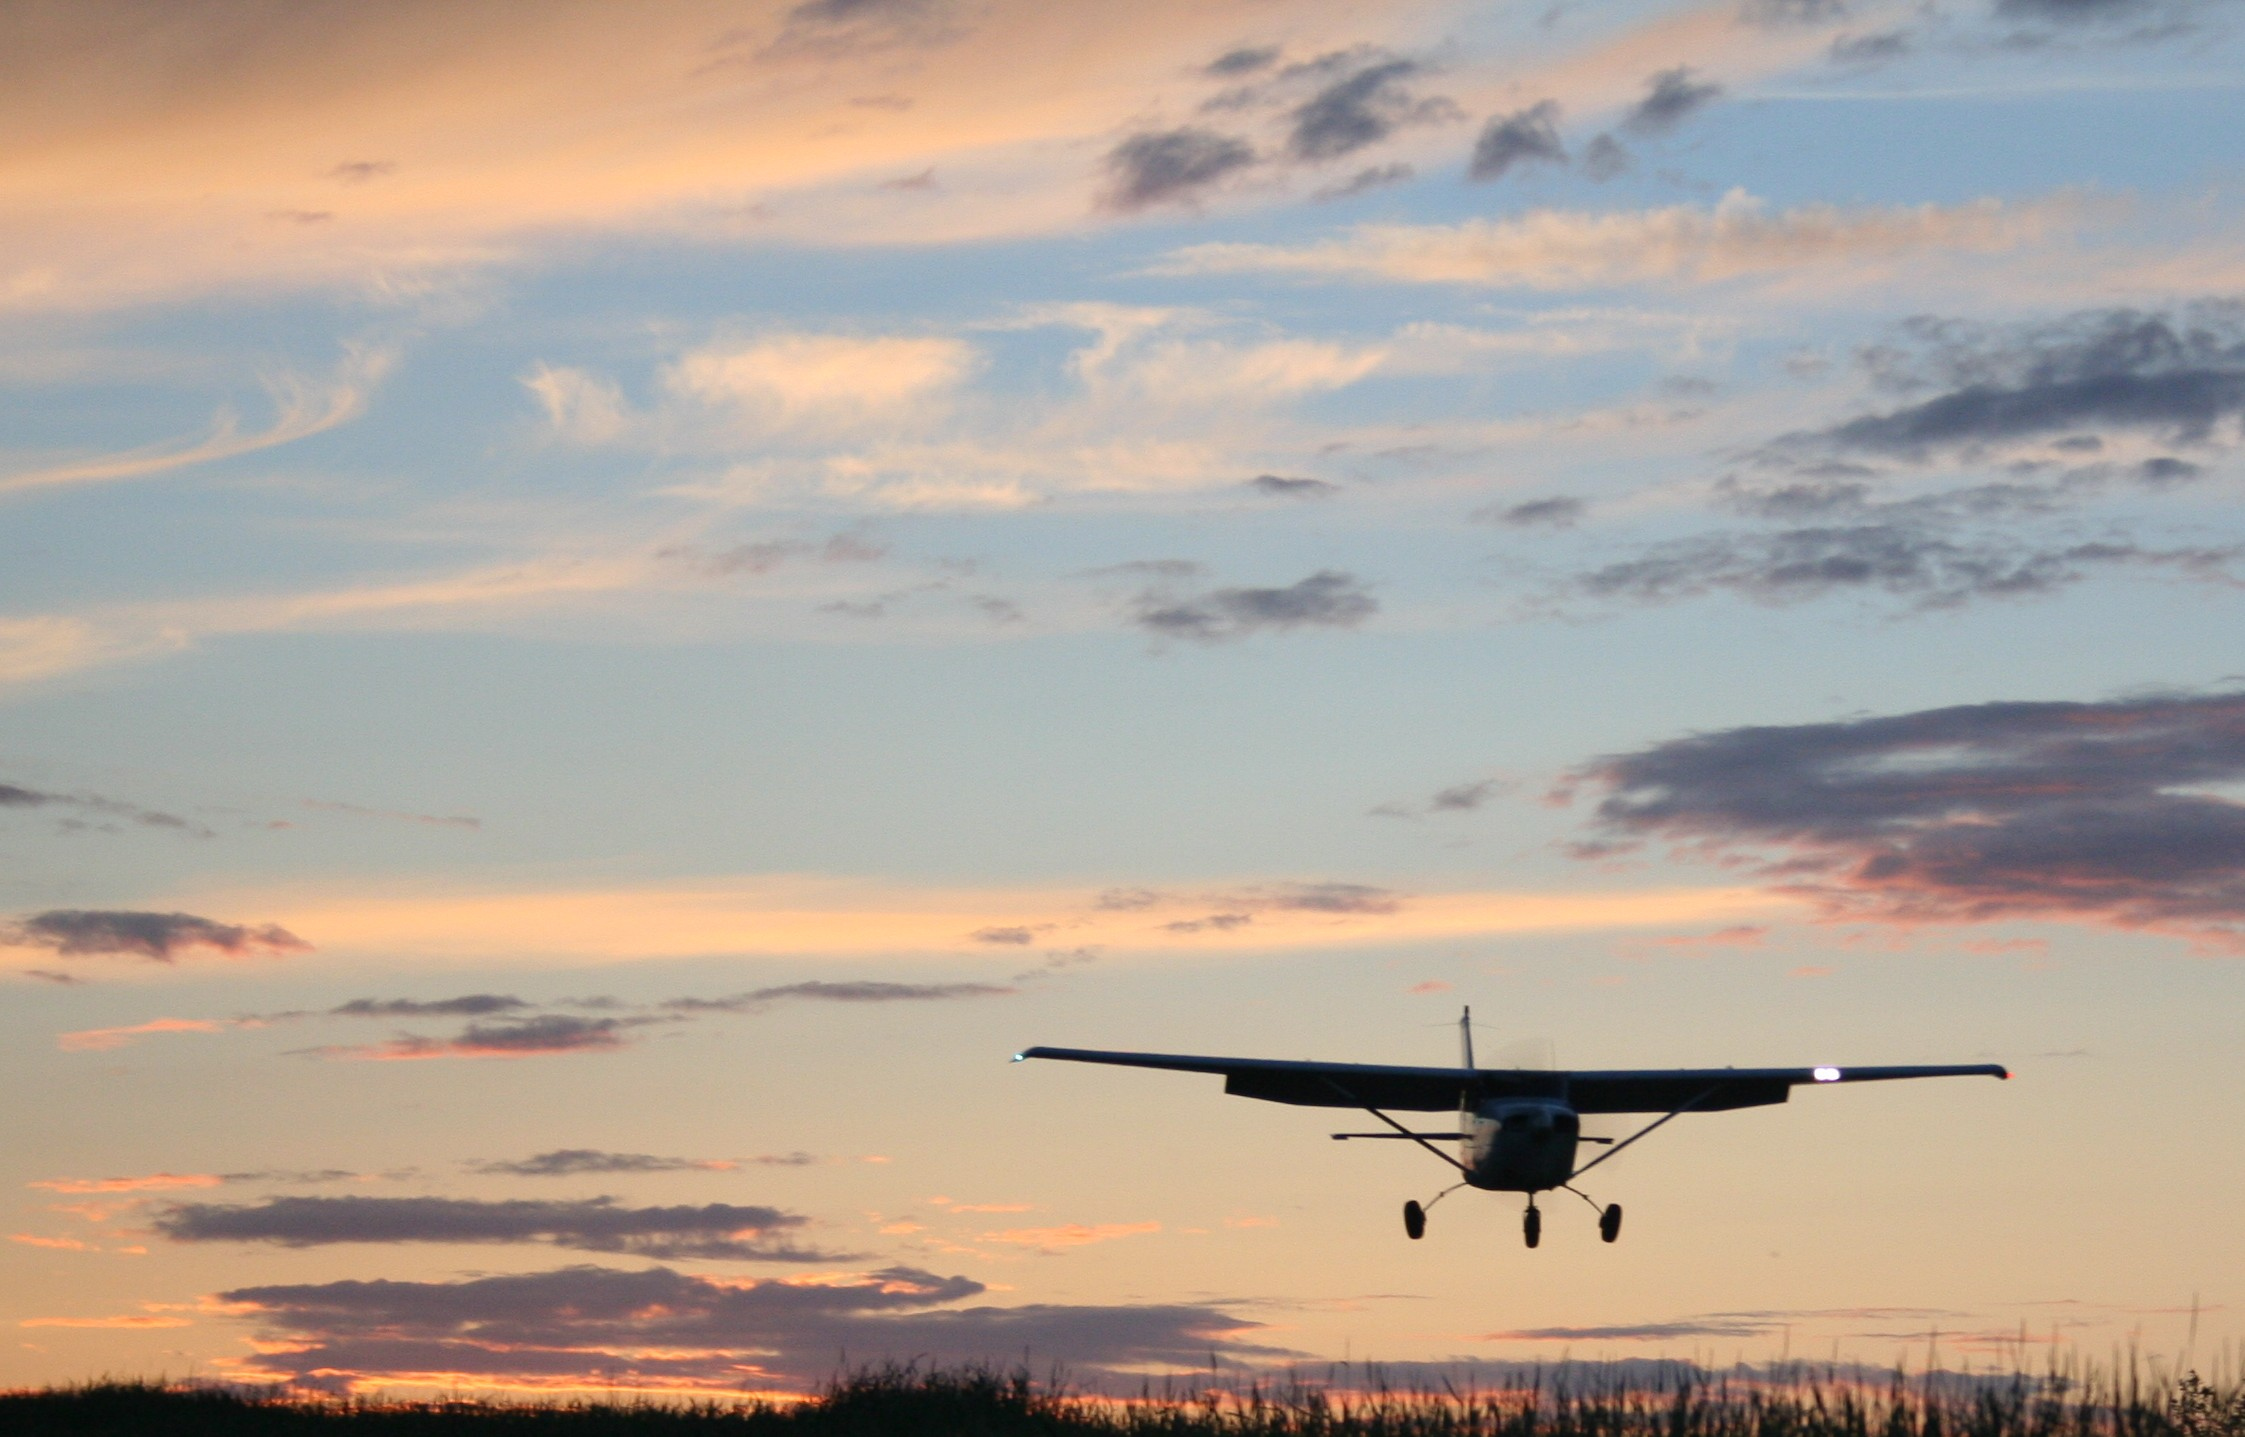 A small plane landing with a sunset streaked sky behind it.